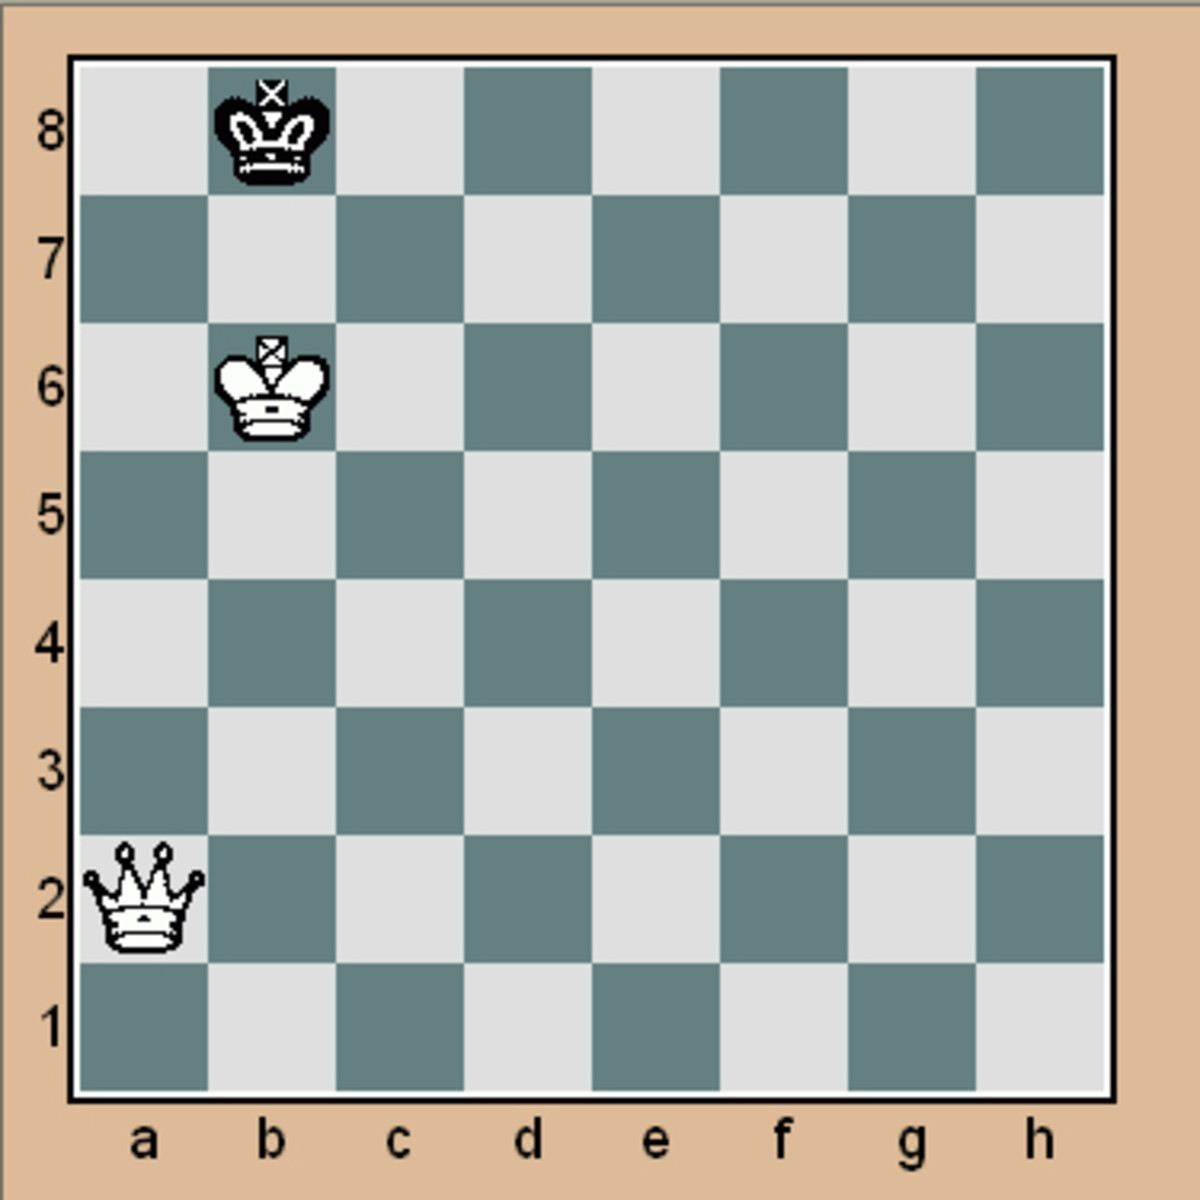 Beginner chess puzzle (Click to enlarge)